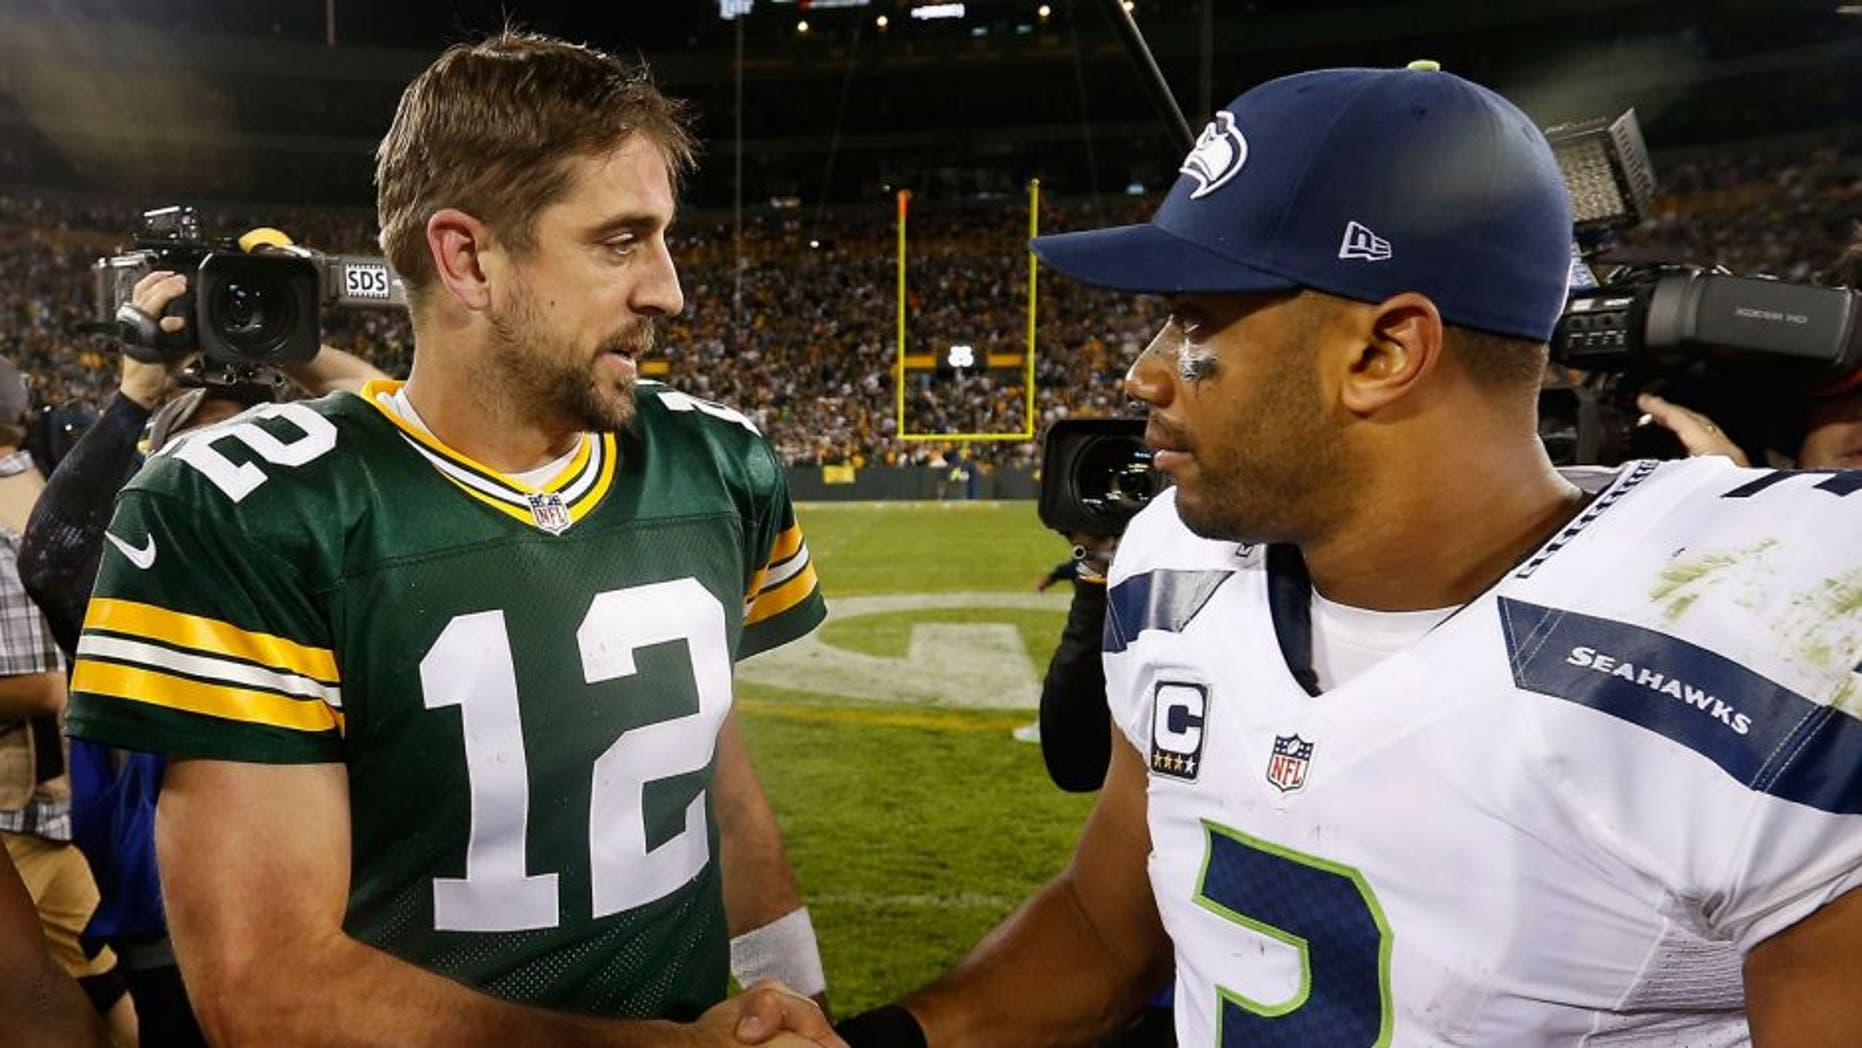 GREEN BAY, WI - SEPTEMBER 20: Quarterbacks Aaron Rodgers #12 of the Green Bay Packers and Russell Wilson #3 of the Seattle Seahawks shake hands following the NFL game at Lambeau Field on September 20, 2015 in Green Bay, Wisconsin. The Packers defeated the Seahawks 27-17. (Photo by Christian Petersen/Getty Images)